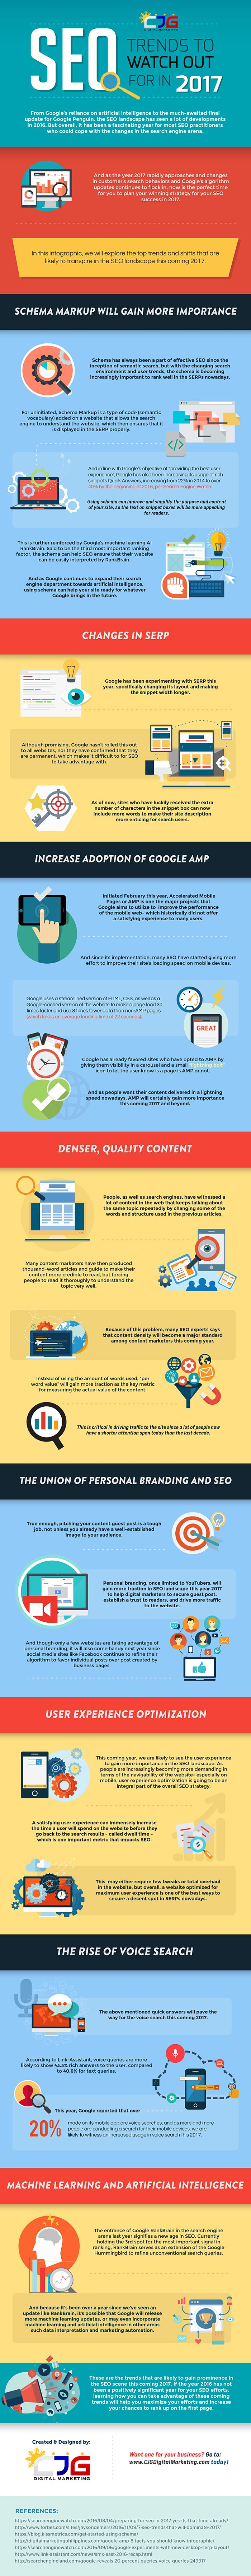 The Emerging SEO Trends of 2017 Infographic